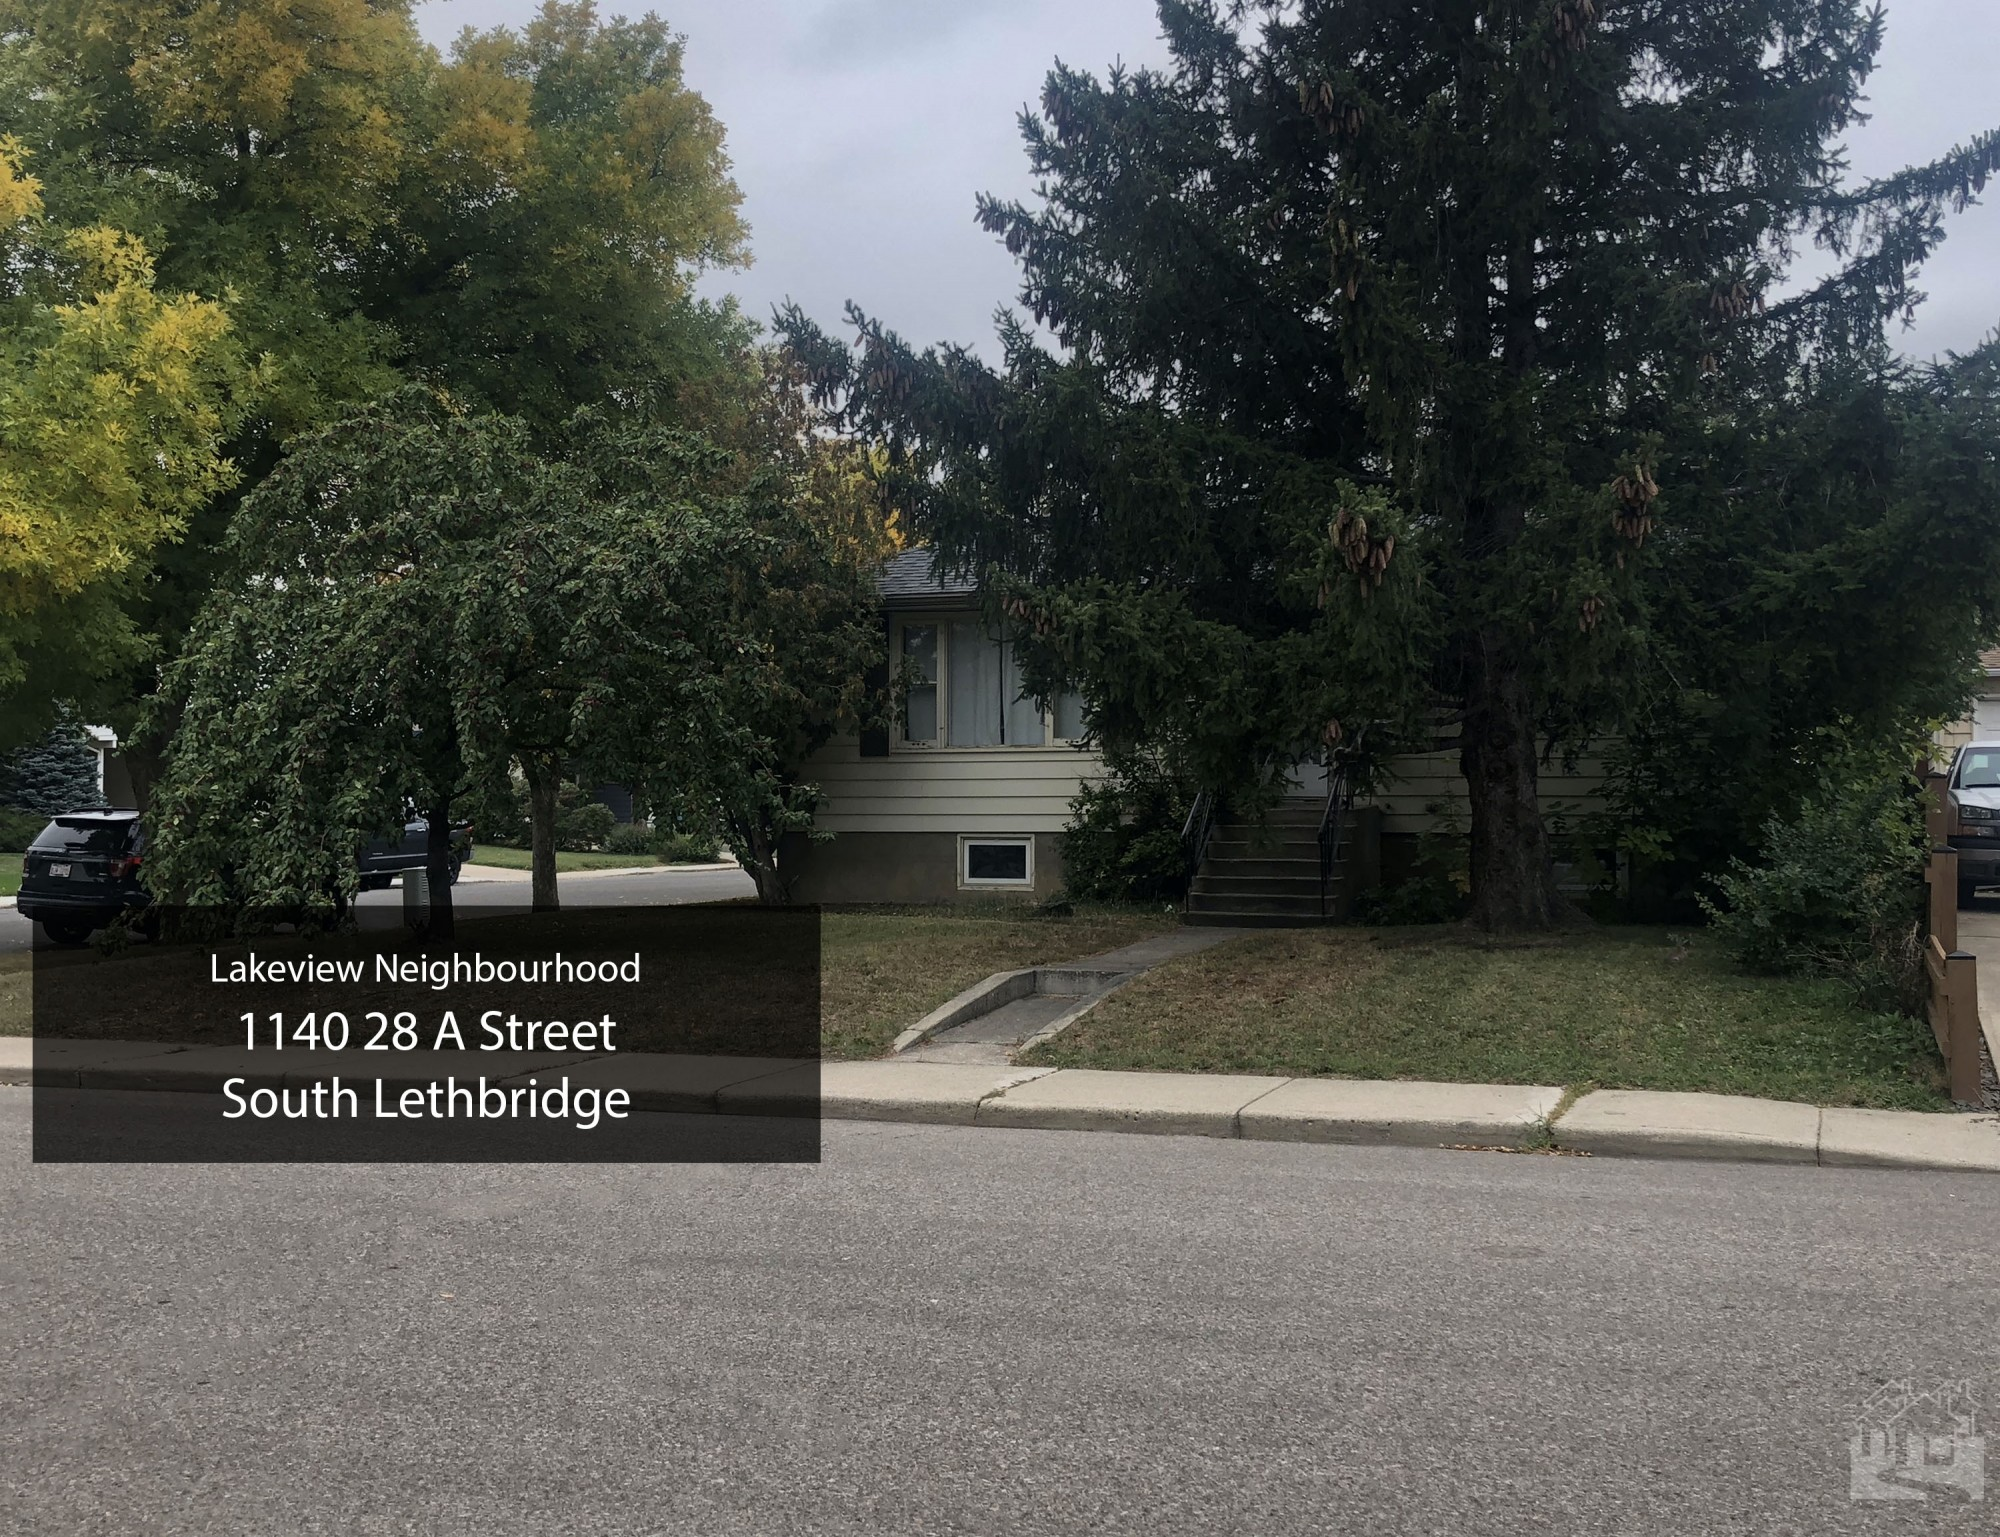 1140 28A Street South Lethbridge (Lower Suite) Cover image